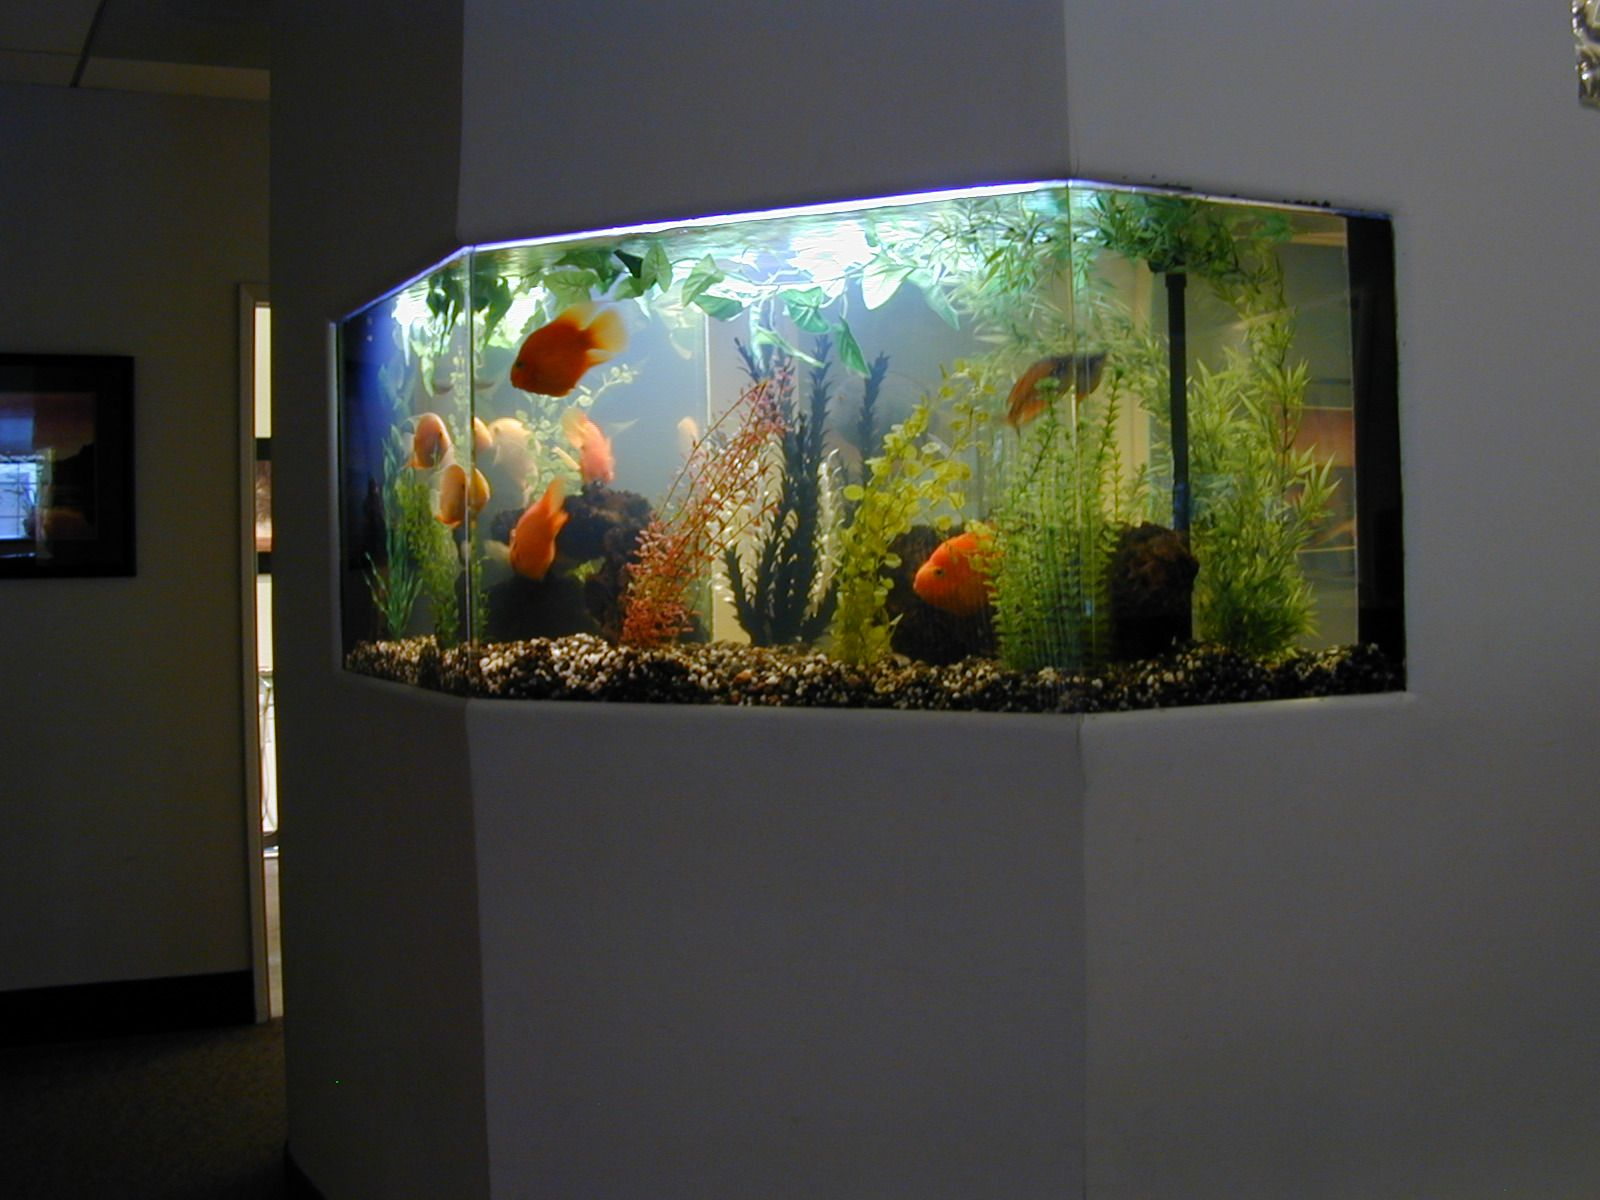 Fish aquarium in janakpuri - 35 Unusual Aquariums And Custom Tropical Fish Tanks For Unique Interior Design Fish Tanks